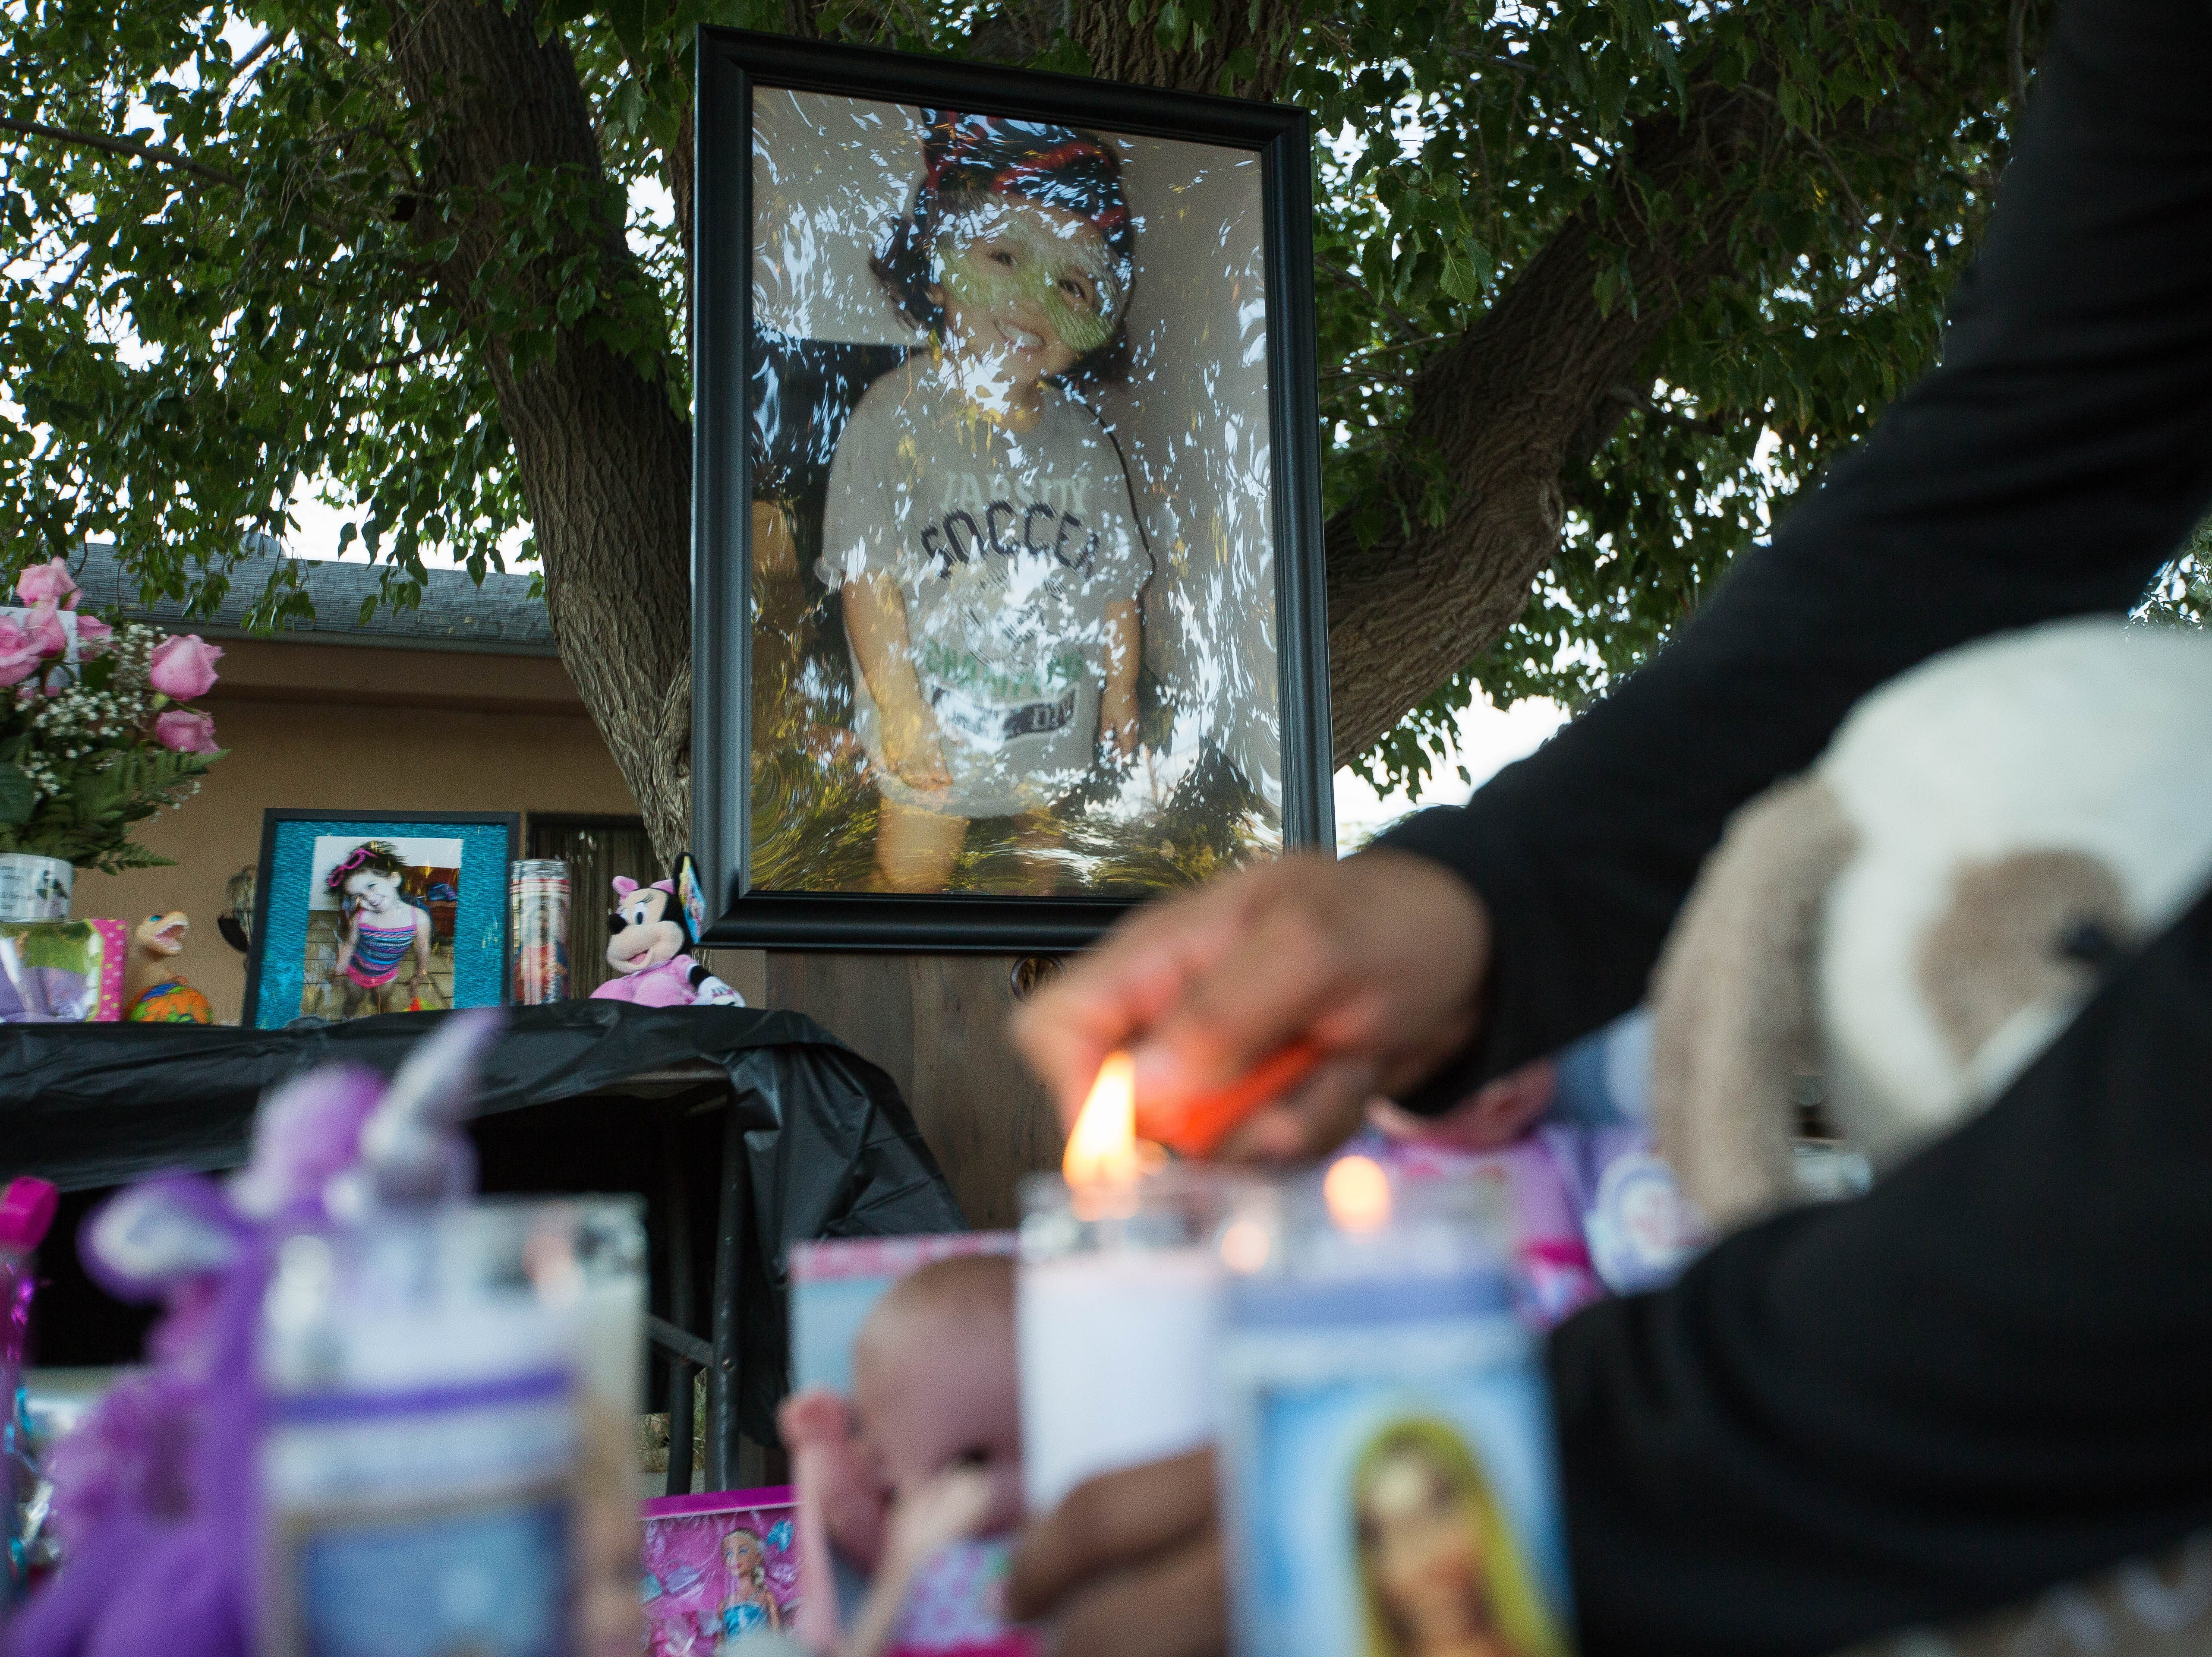 Frankie Duran, lights a candle on the memorial in front of photographs of Fabiola Rodriguez, 2,  who was found dead Thursday morning. Friends, Members of the Las Cruces Community and Family gathered outside of the house of Rodriguez's maternal grandparents for a candlelight vigil, Friday September 7, 2018.